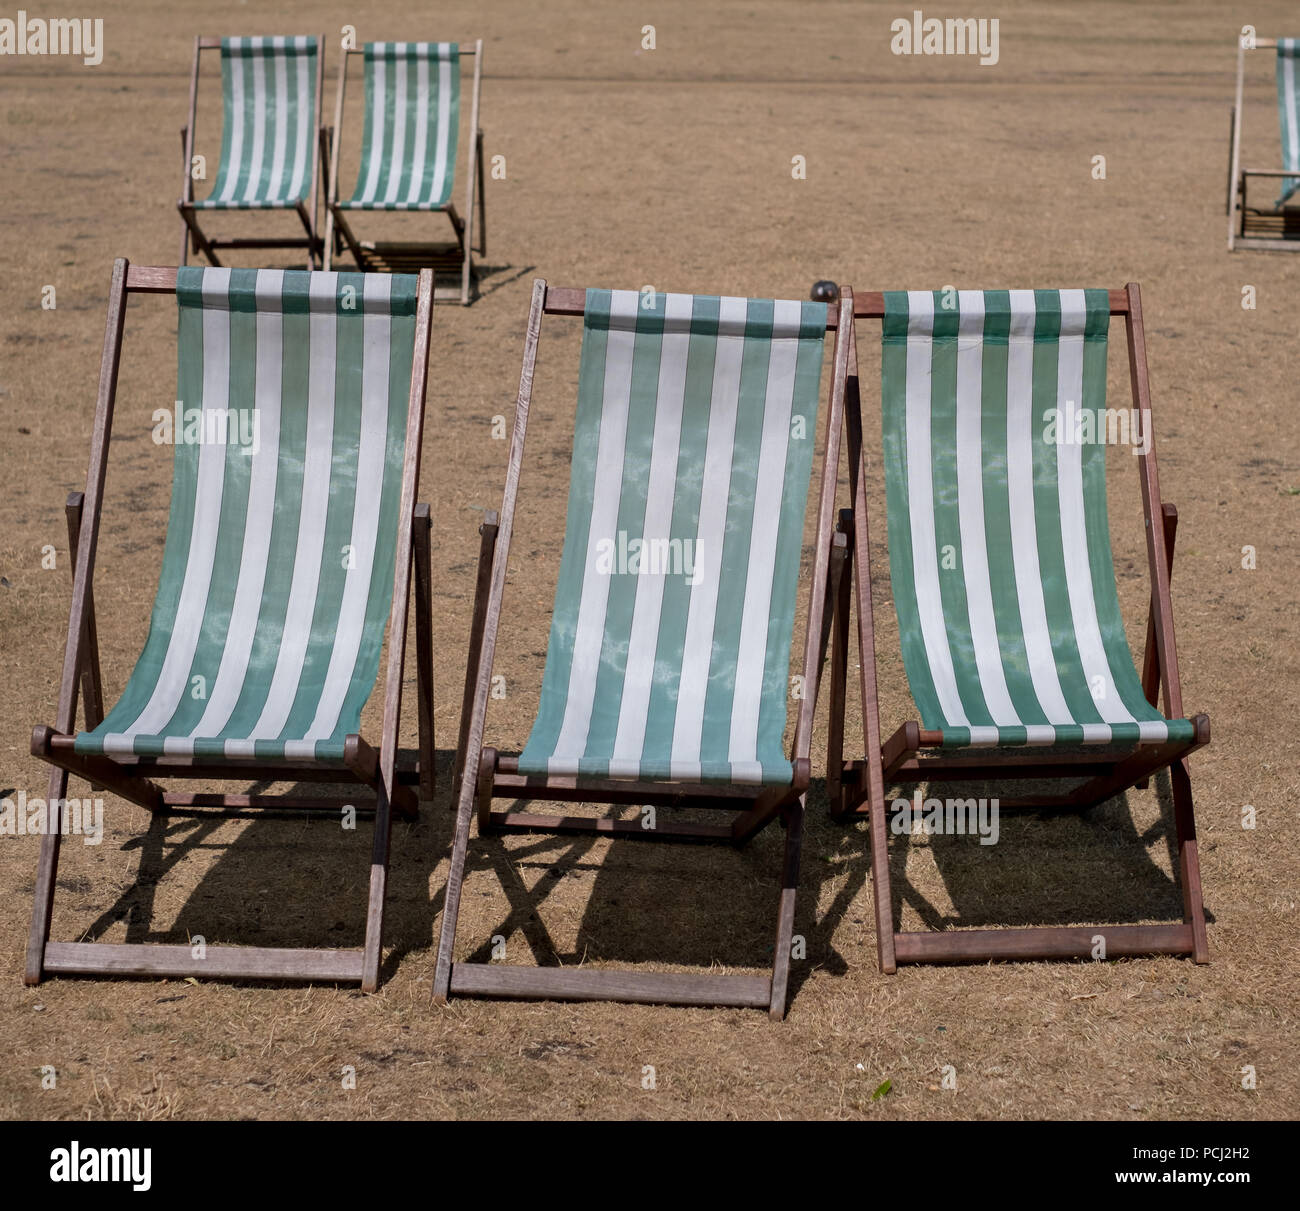 Deck chairs with green and white stripes on dead grass in a parched Hyde Park, London during the heatwave, July 2018. - Stock Image